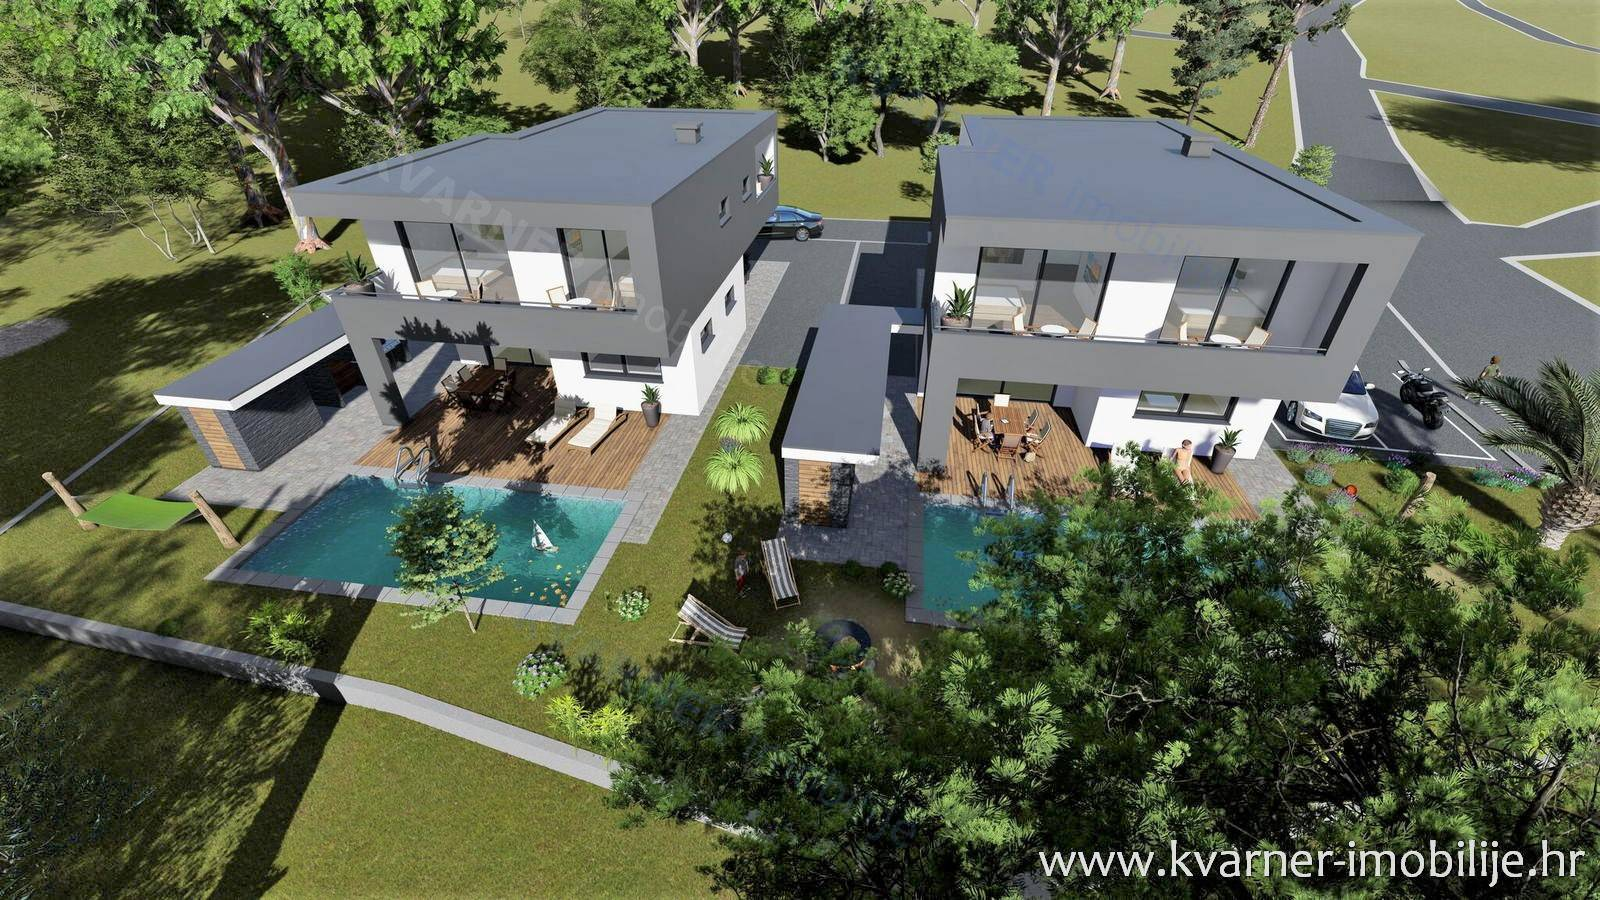 UNIQUE PROJECT ON THE ISLAND OF KRK!! EXCLUSIVE VILLAS WITH PANORAMIC VIEW TO THE SEA!